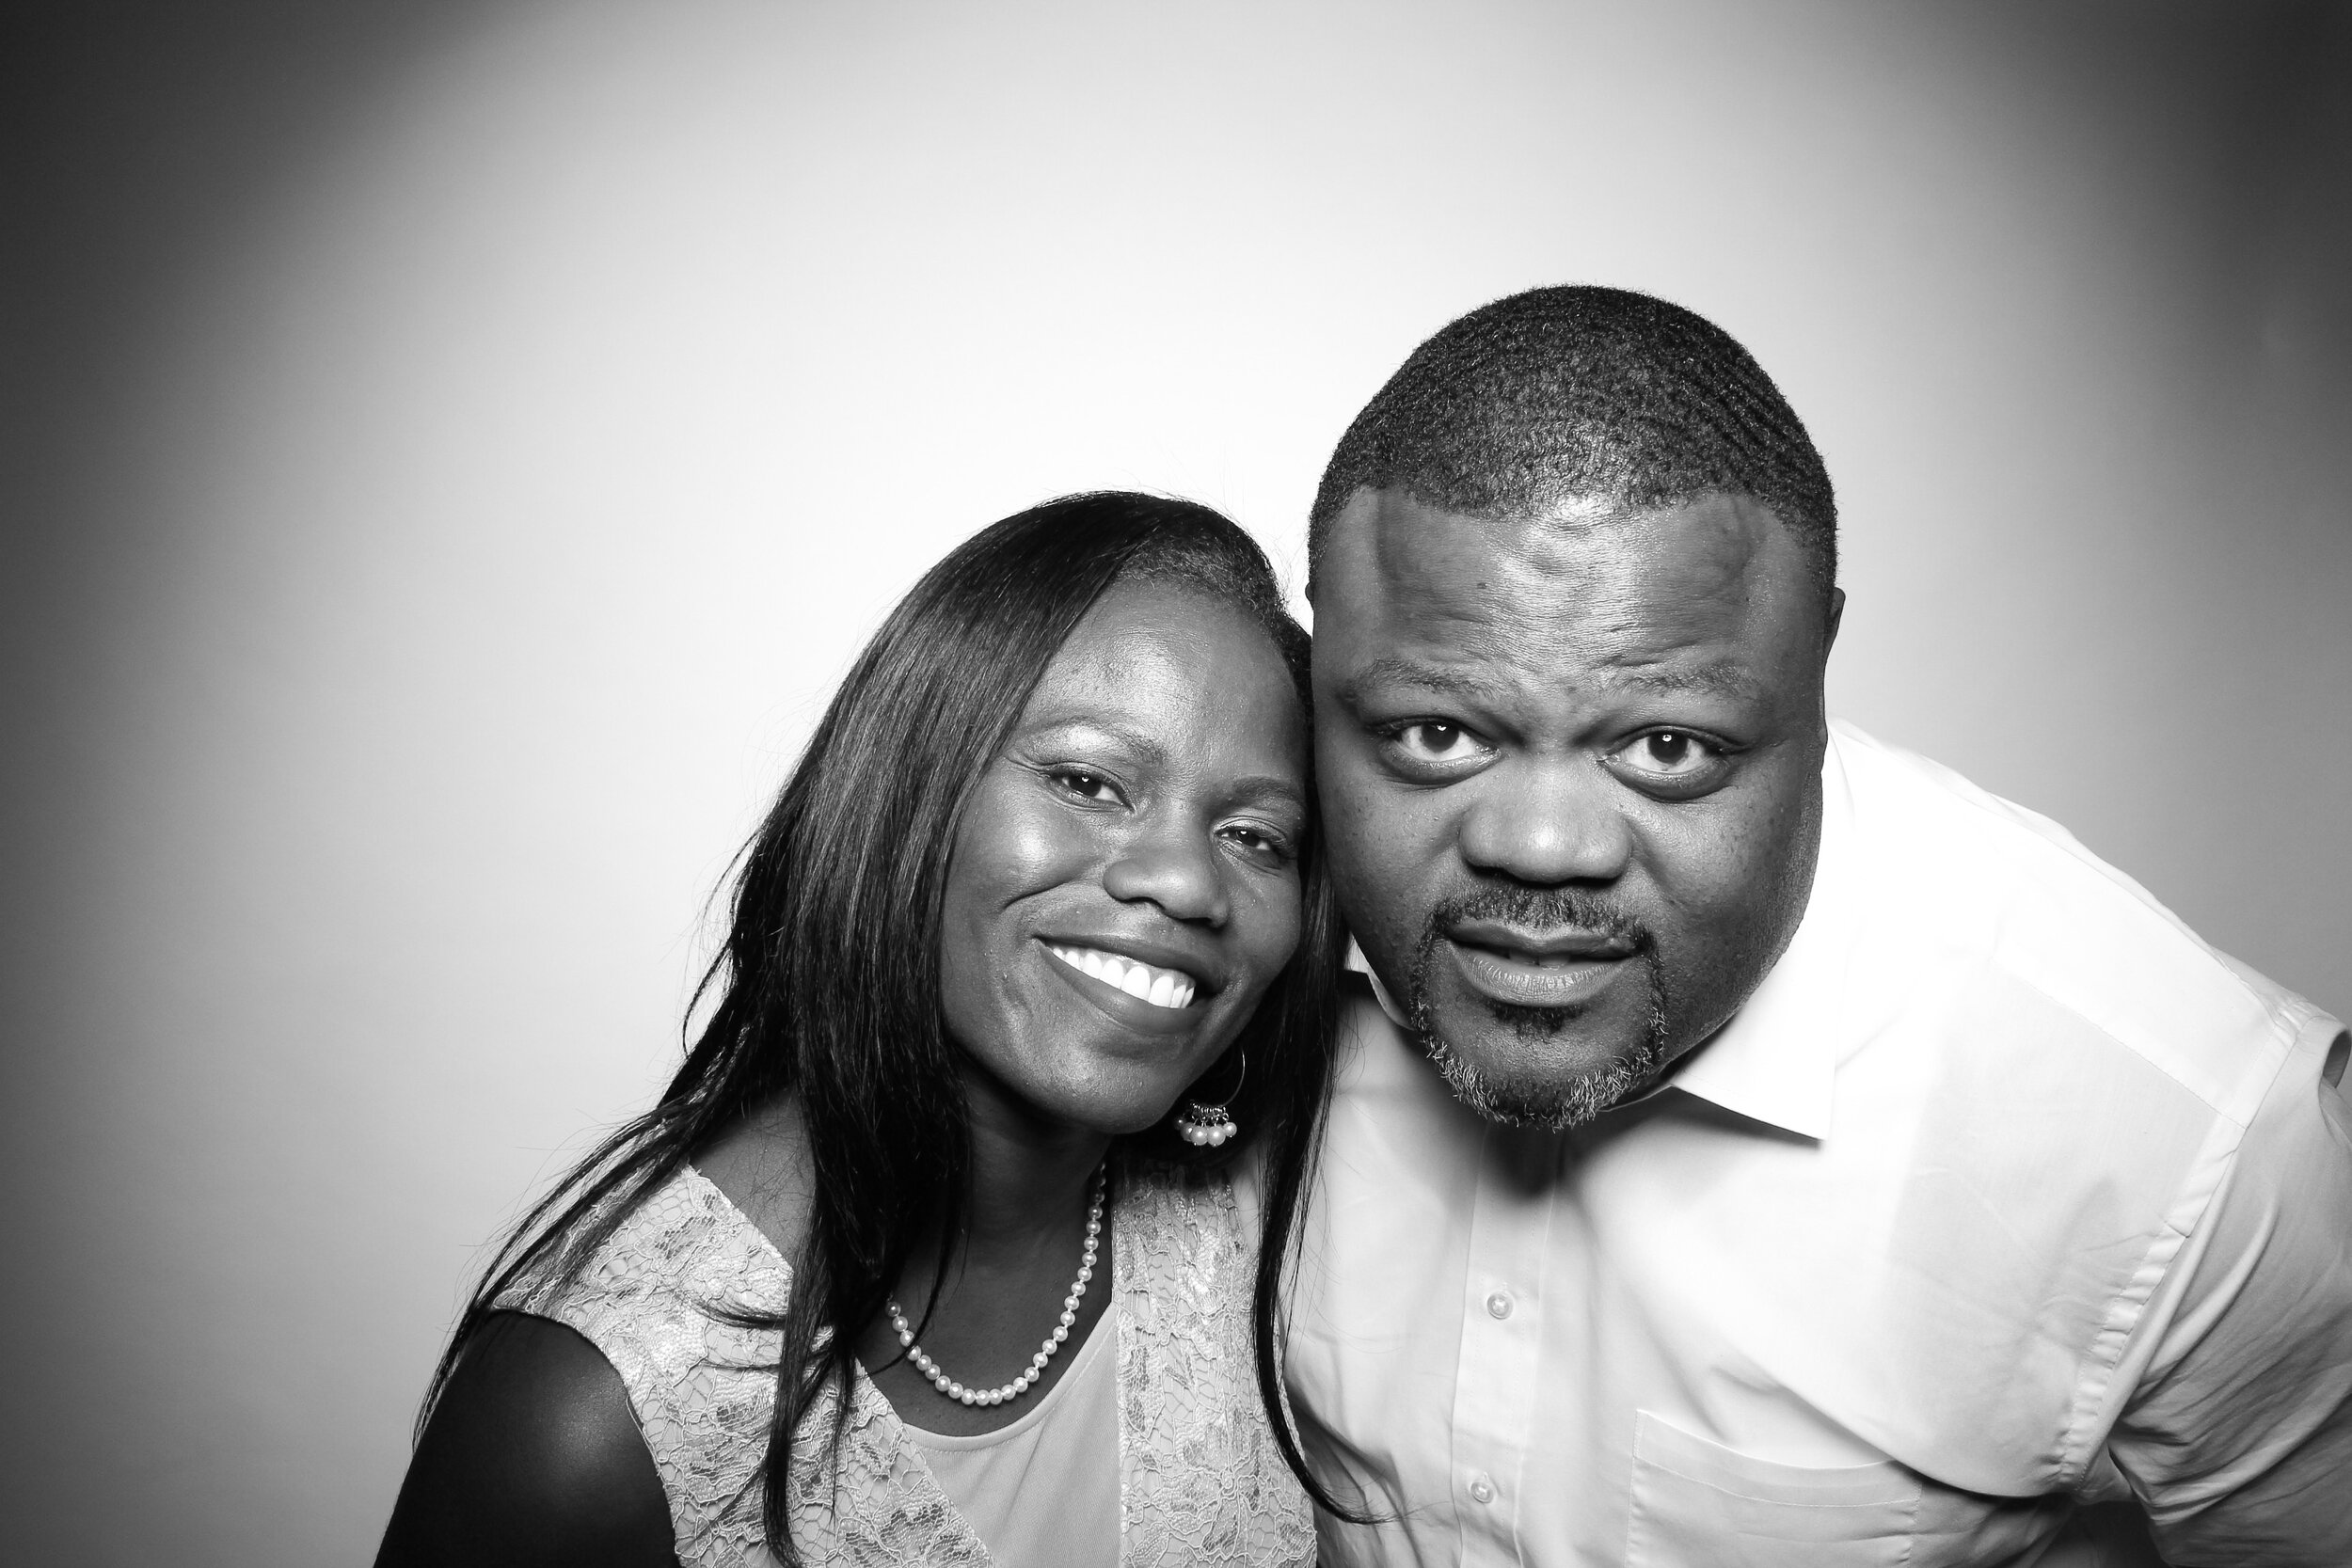 Mir_Mir_Kardashian_Style_Black_and_White_Photo_Booth_Chicago_14.jpg